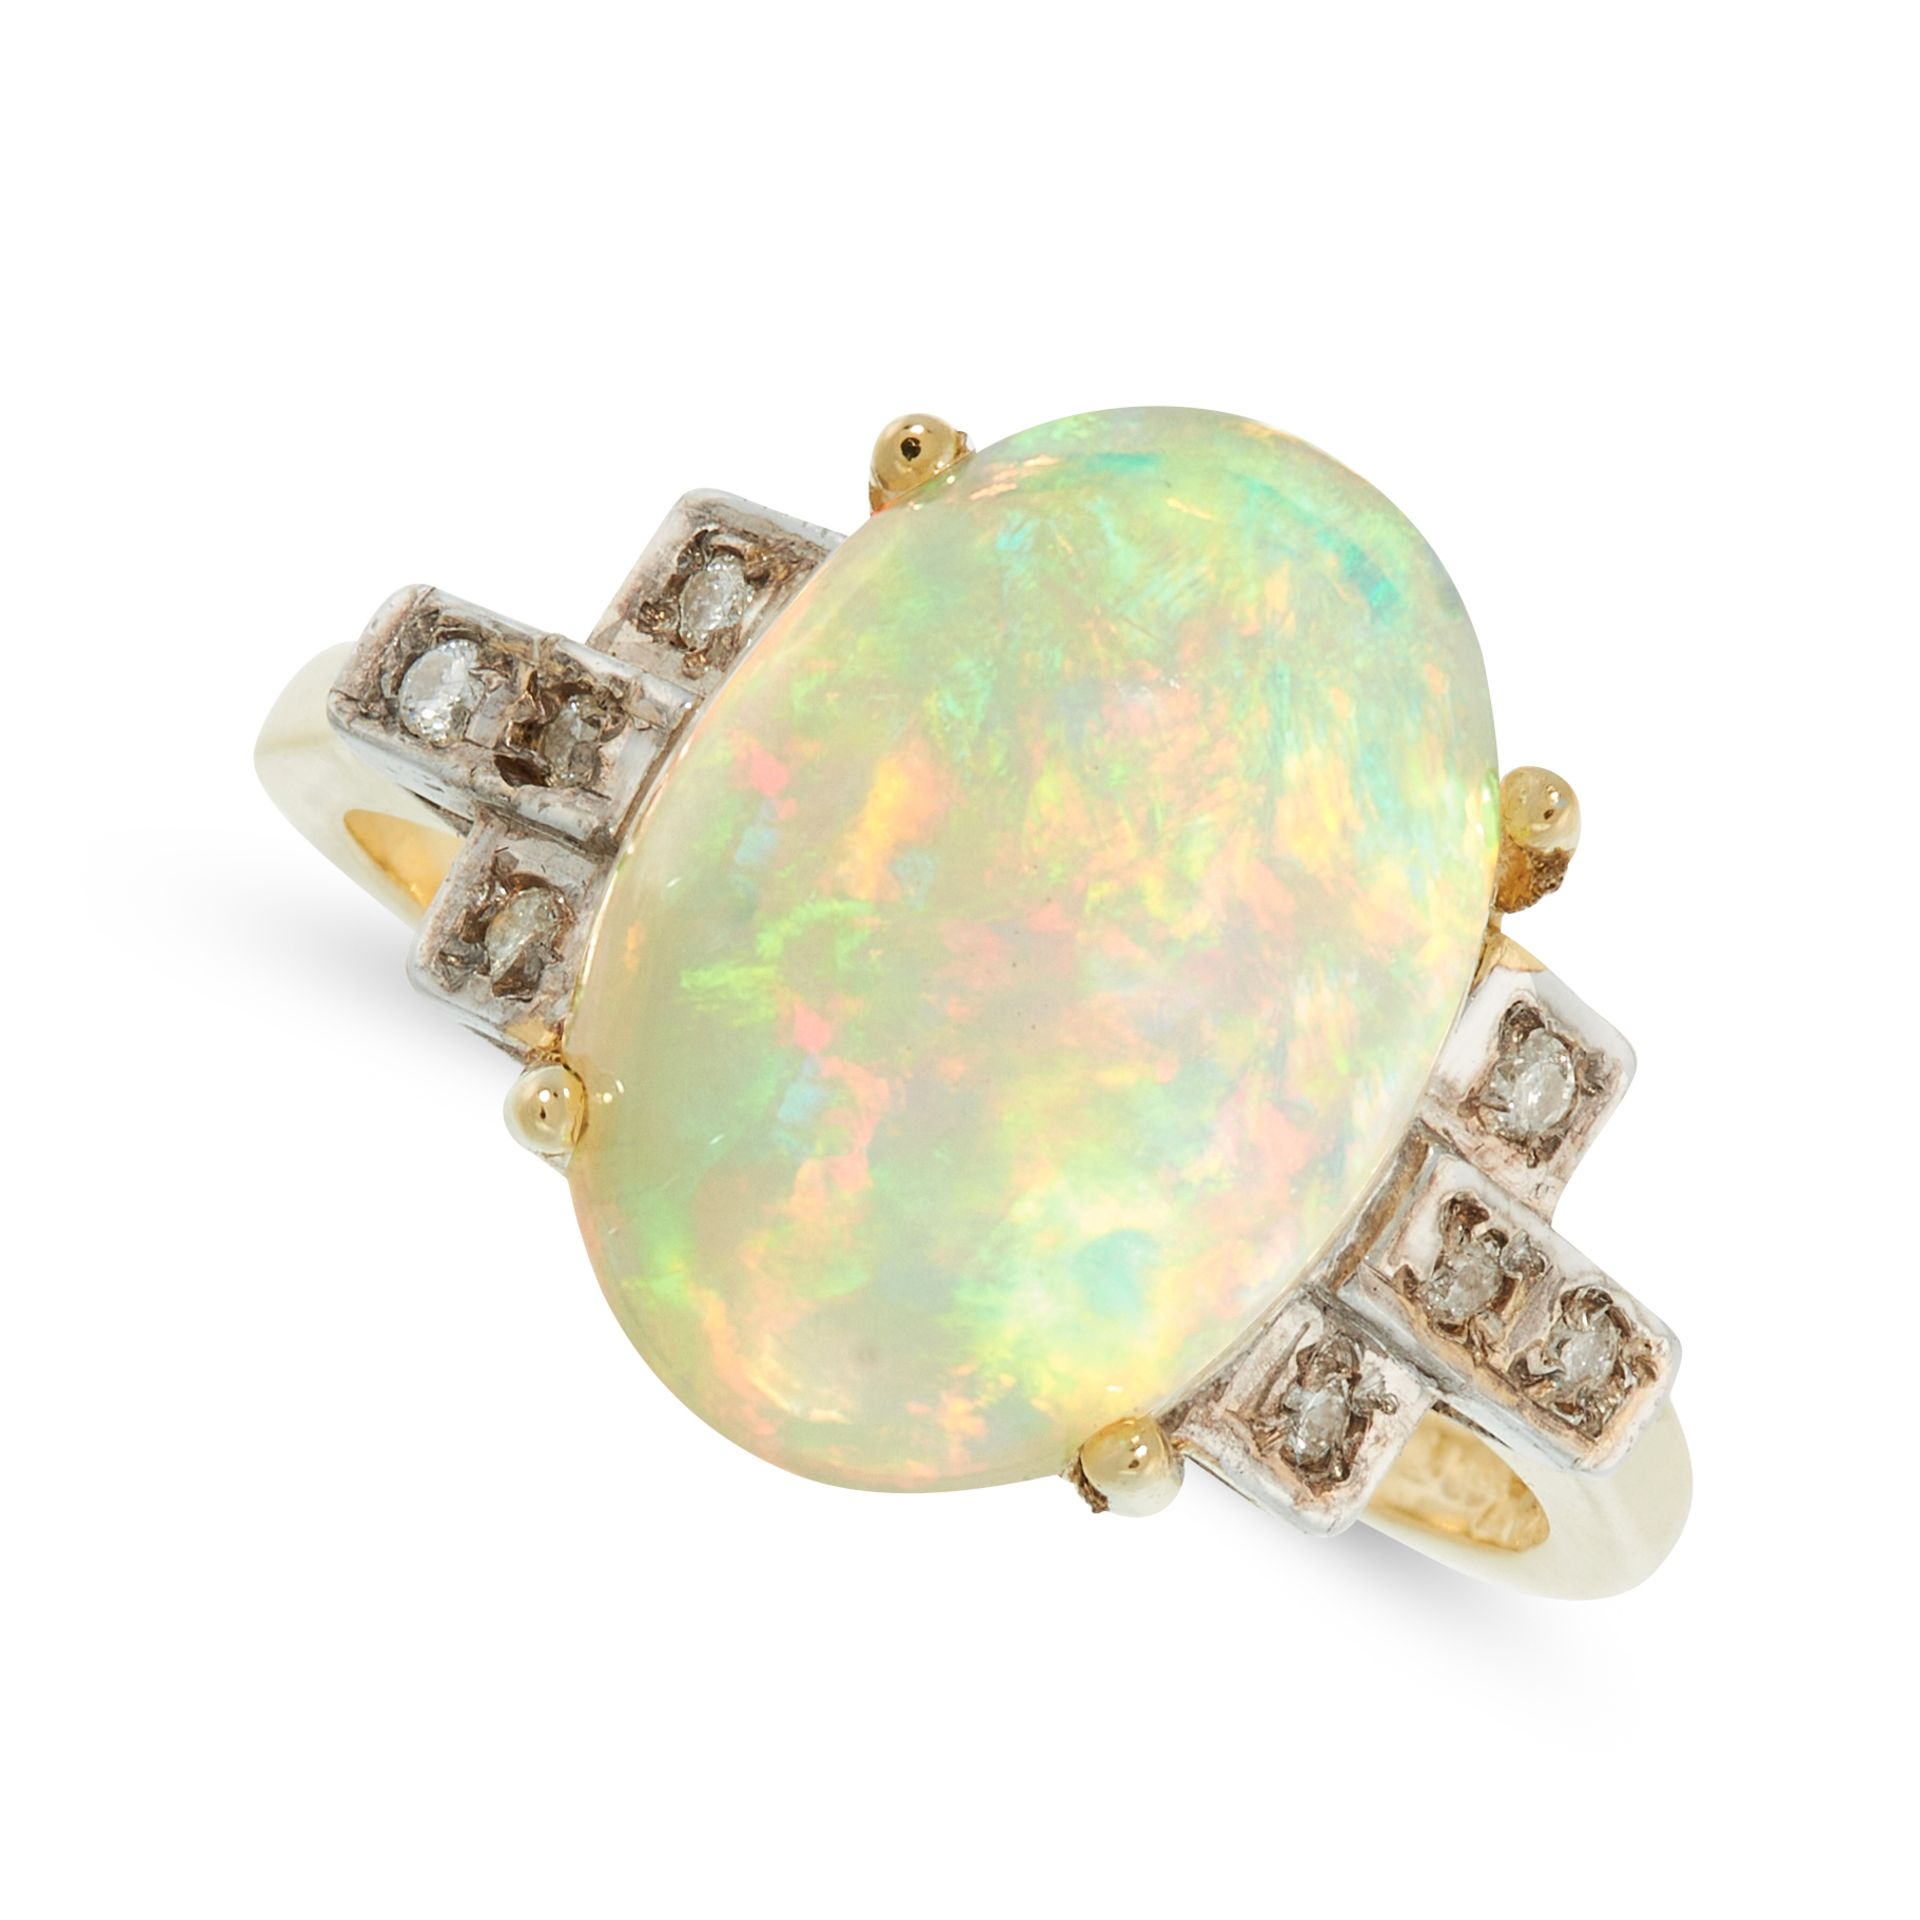 AN OPAL AND DIAMOND DRESS RING in 18ct yellow gold, set with a cabochon opal between a geometric